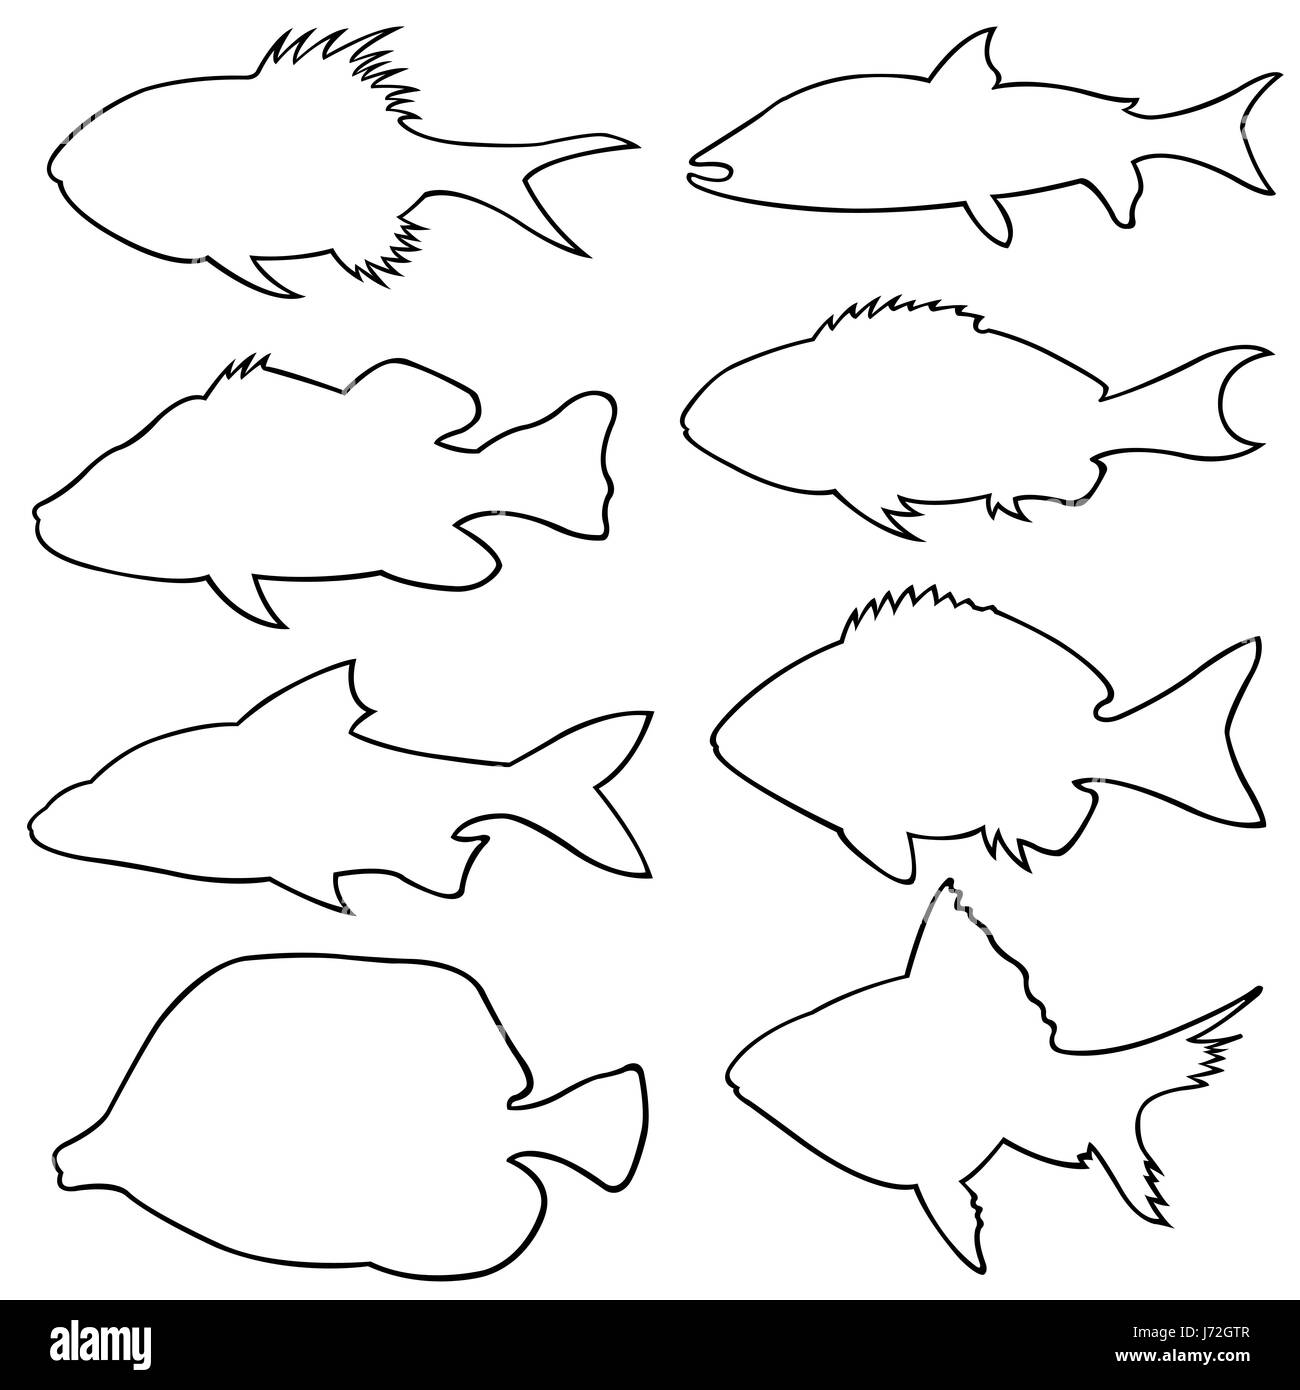 Set of different small fish silhouettes isolated on white - Stock Image